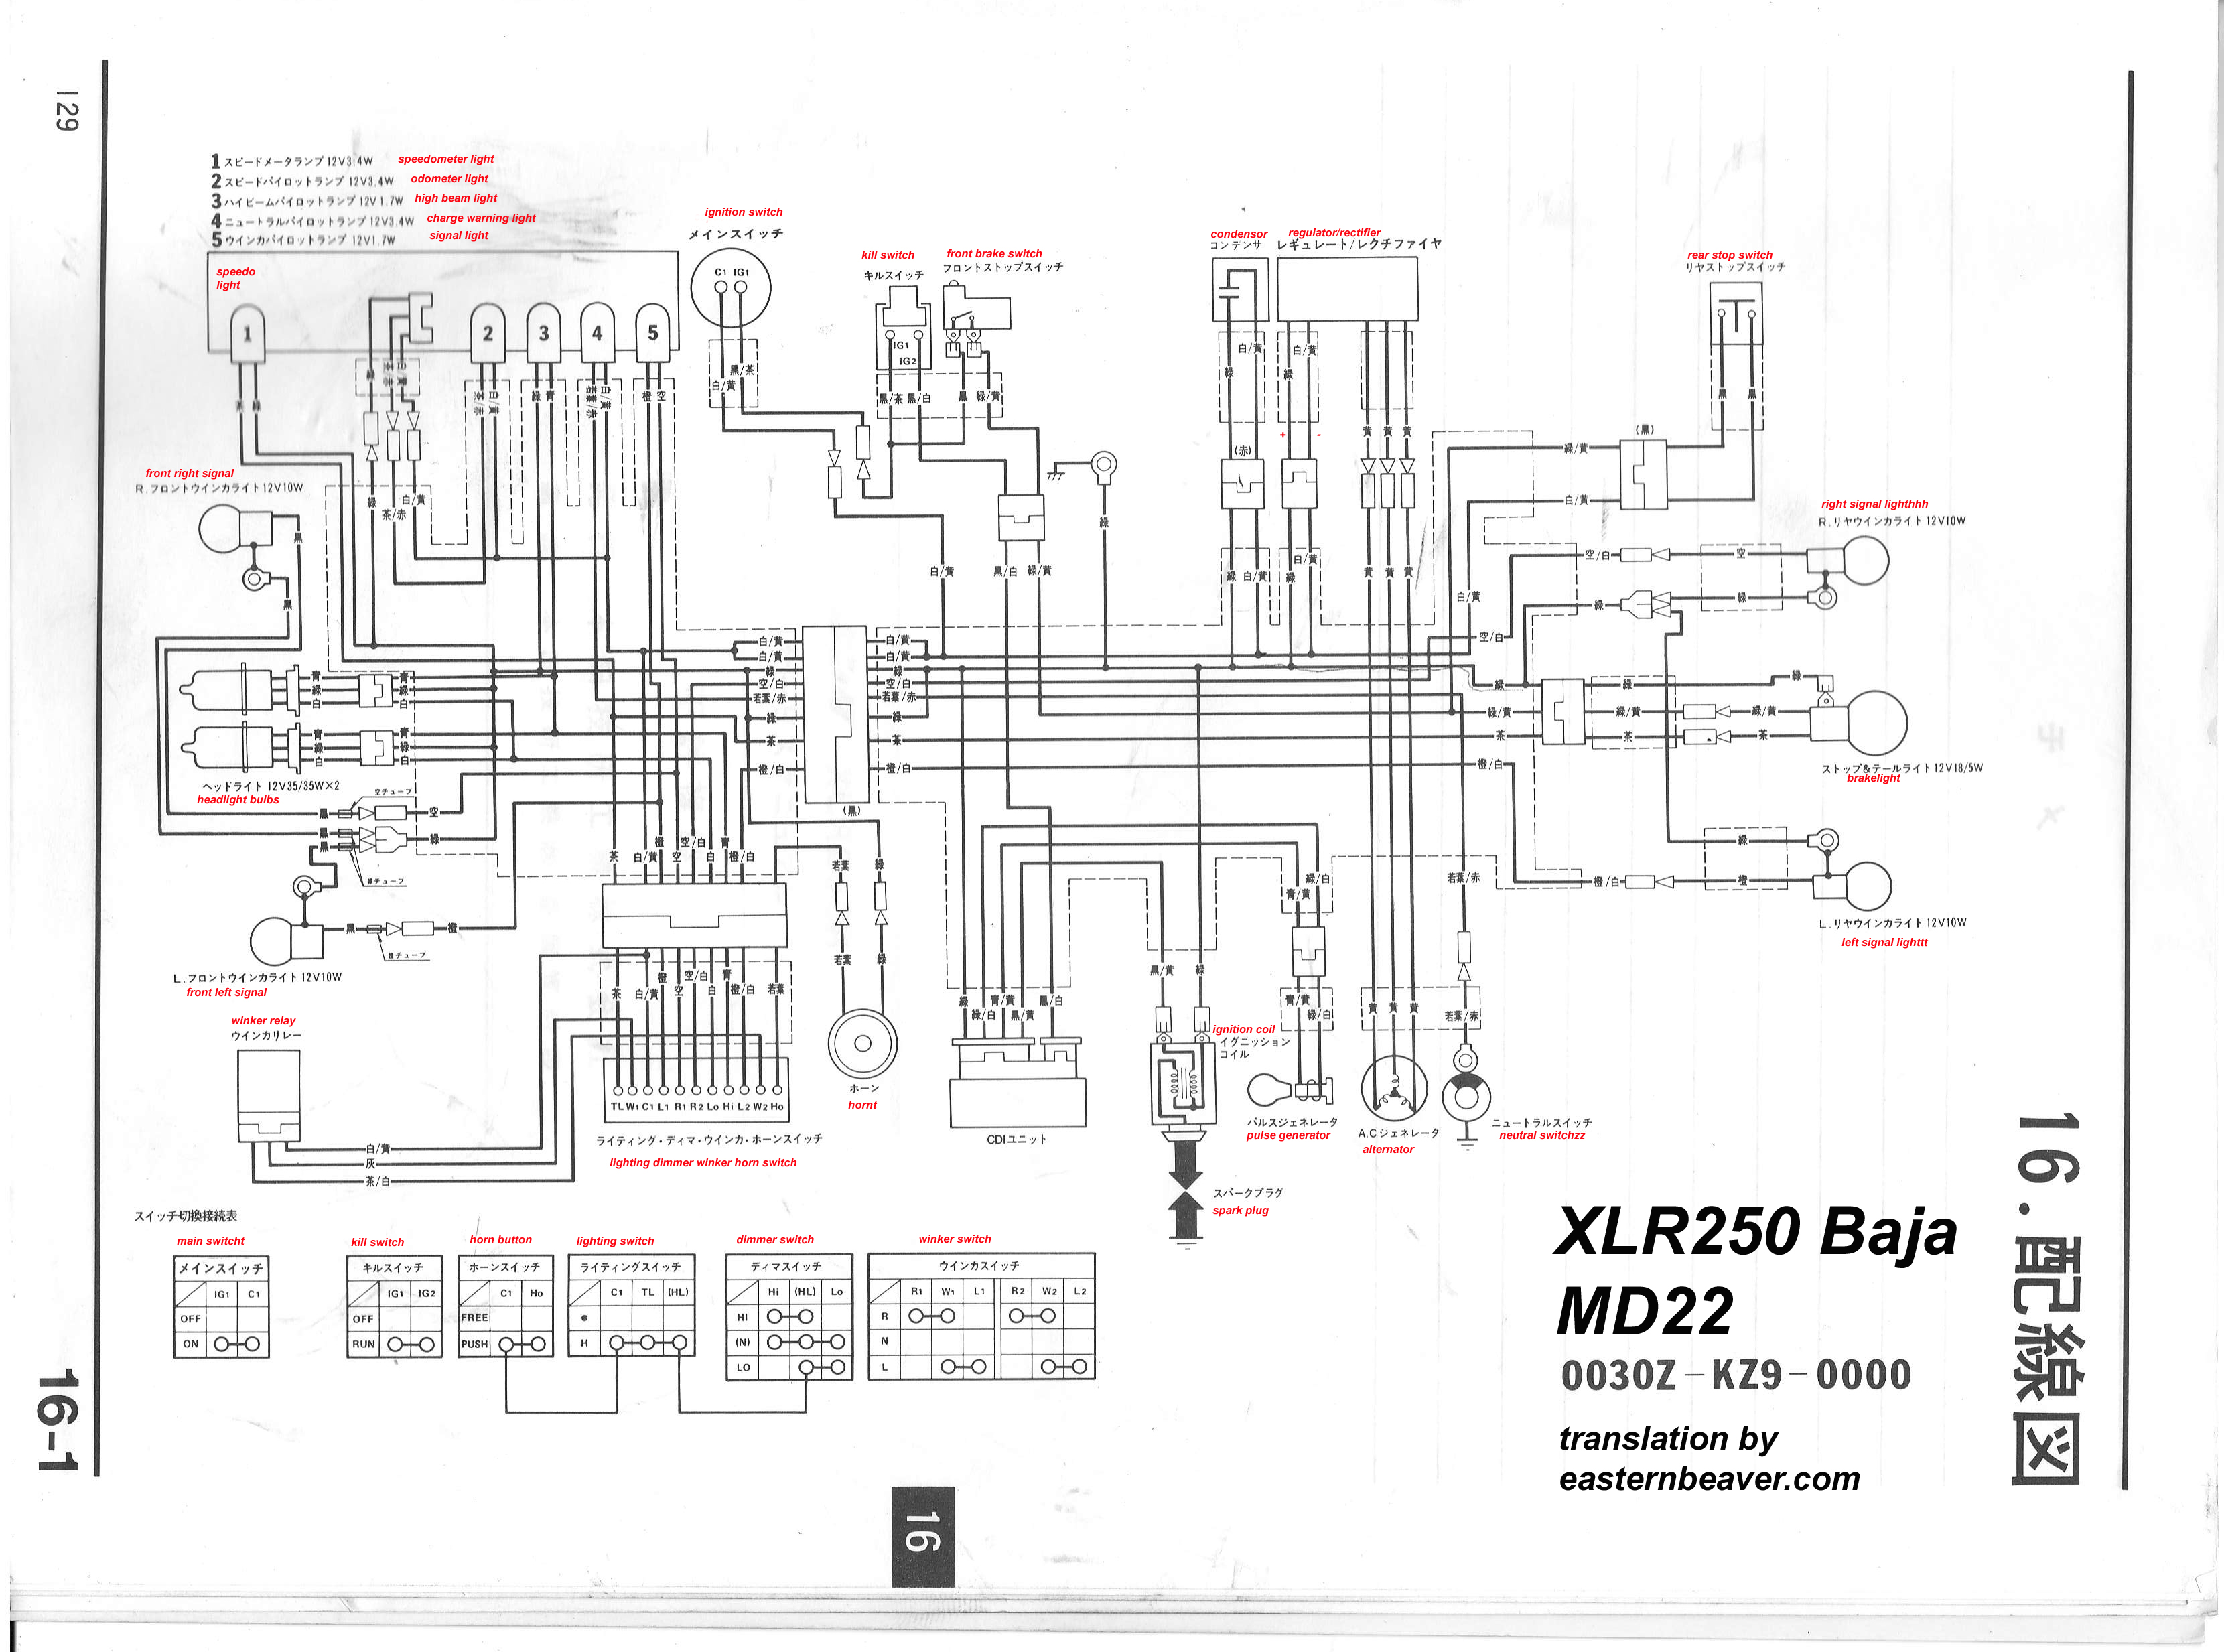 Honda Xlr Wiring Diagram Guide And Troubleshooting Of Trs To Likewise Mini 4 Pin On Xlr250 Baja Rh Easternbeaver Com 125 R Balanced